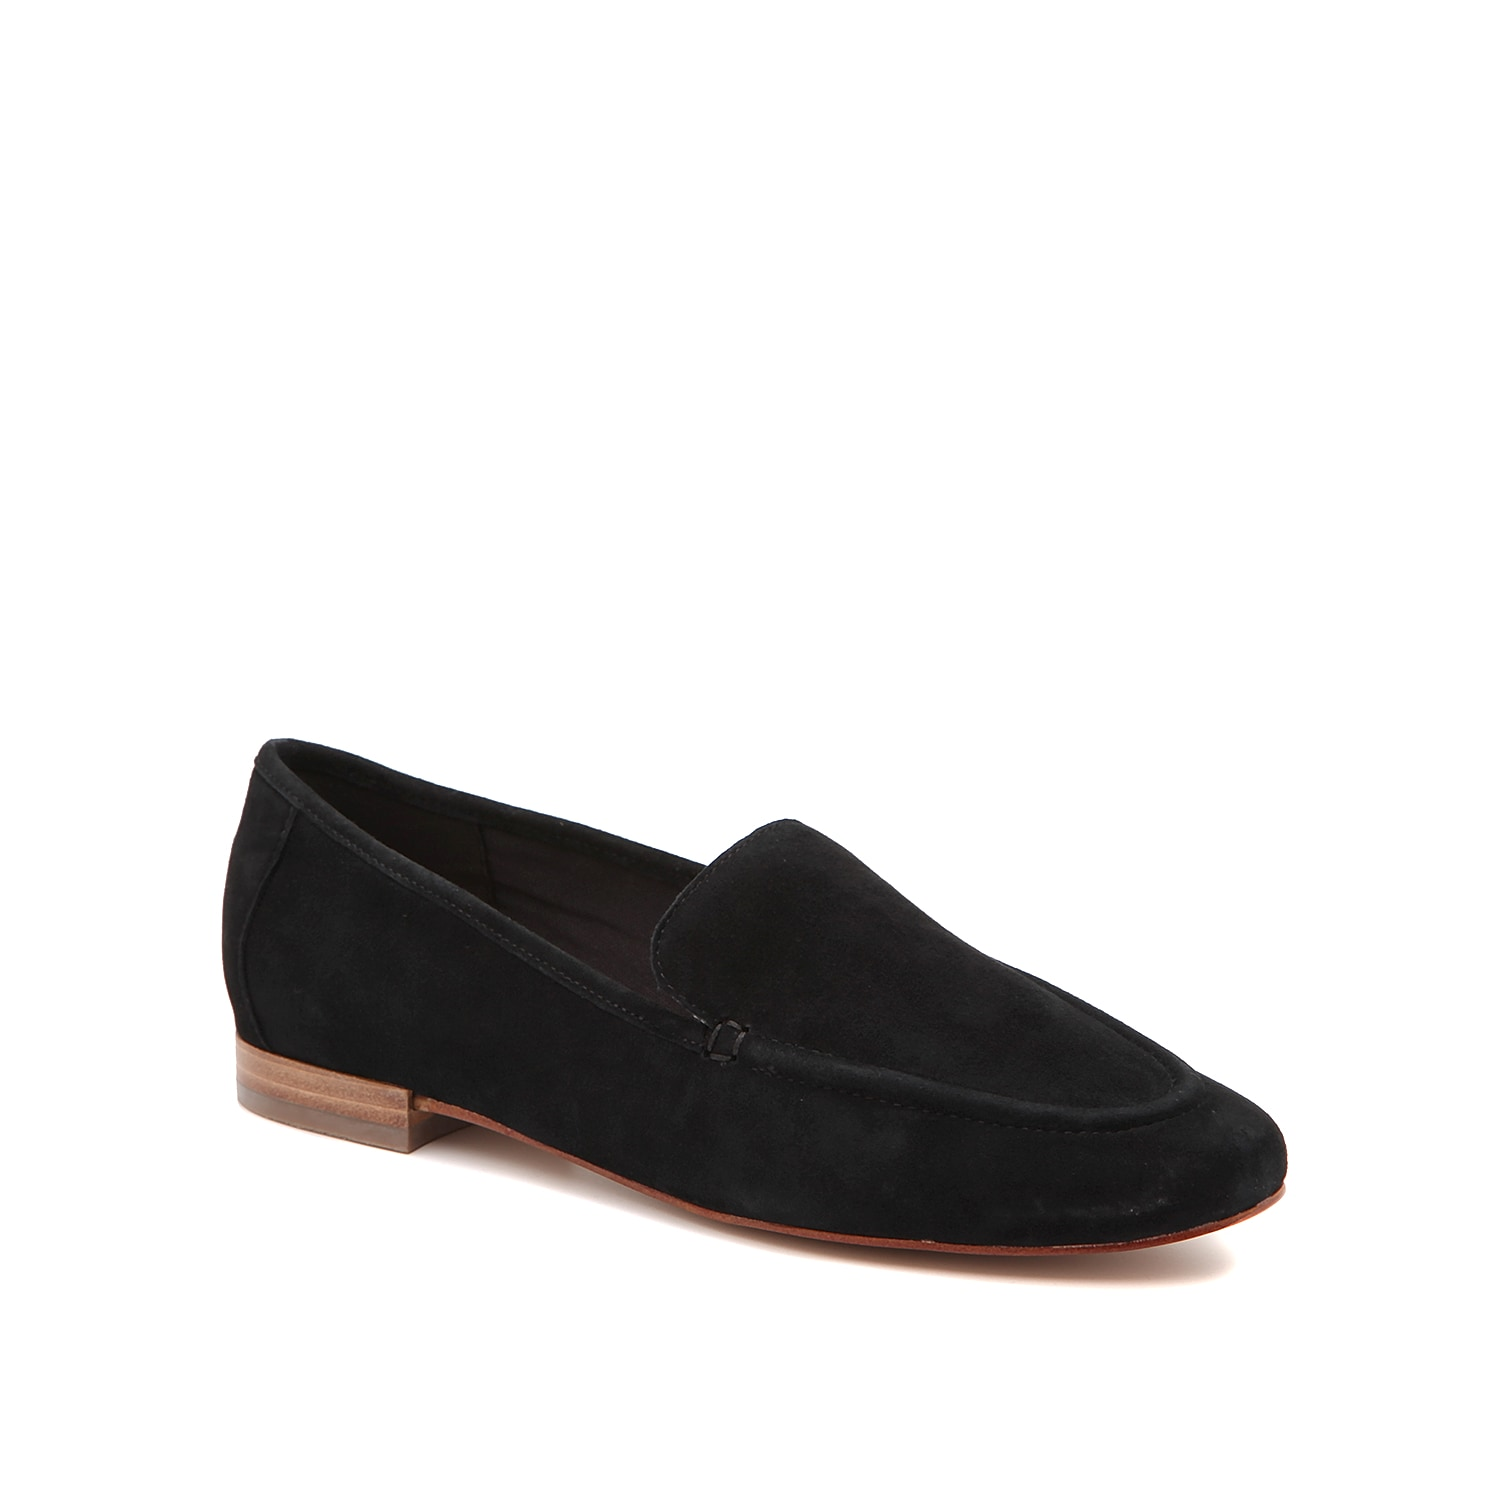 For upscale styling, slip on the Ybulla loafers from Aldo. These suede flats are streamlined in design for effortless matching with any closet combo.